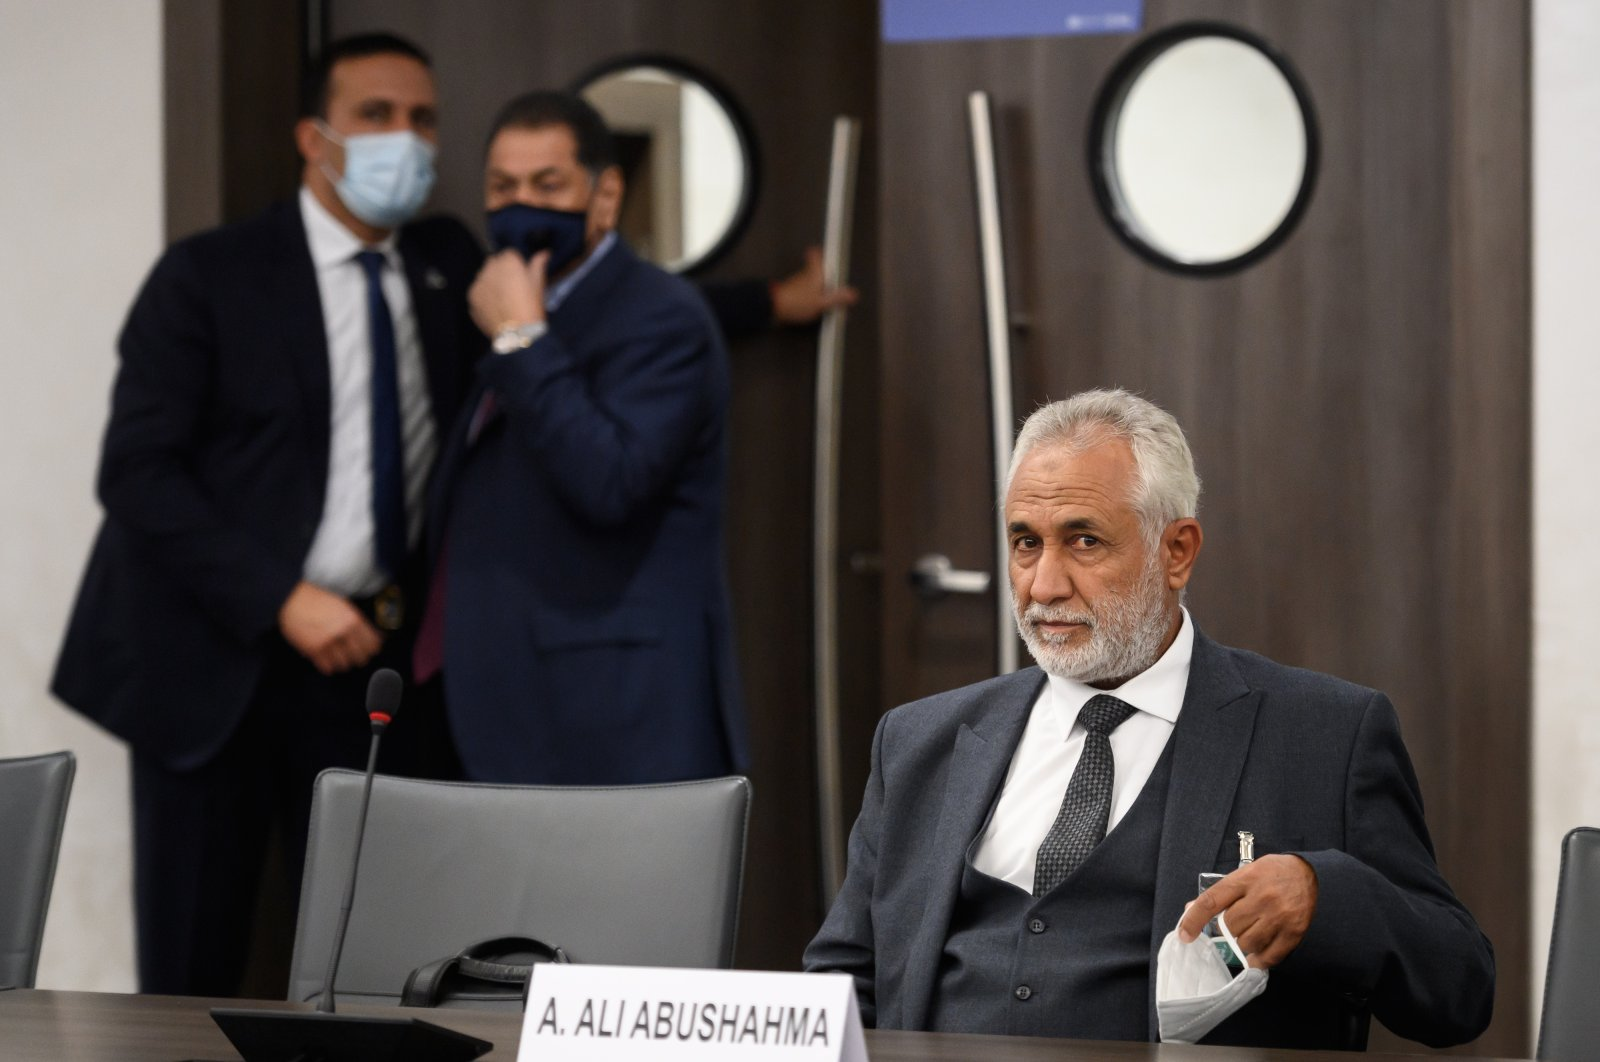 The head of the Government of National Accord (GNA) military delegation, Ahmed Ali Abushahma, attends talks between the rival factions in the Libya conflict, in Geneva, Switzerland, Oct. 20, 2020. (AP Photo)